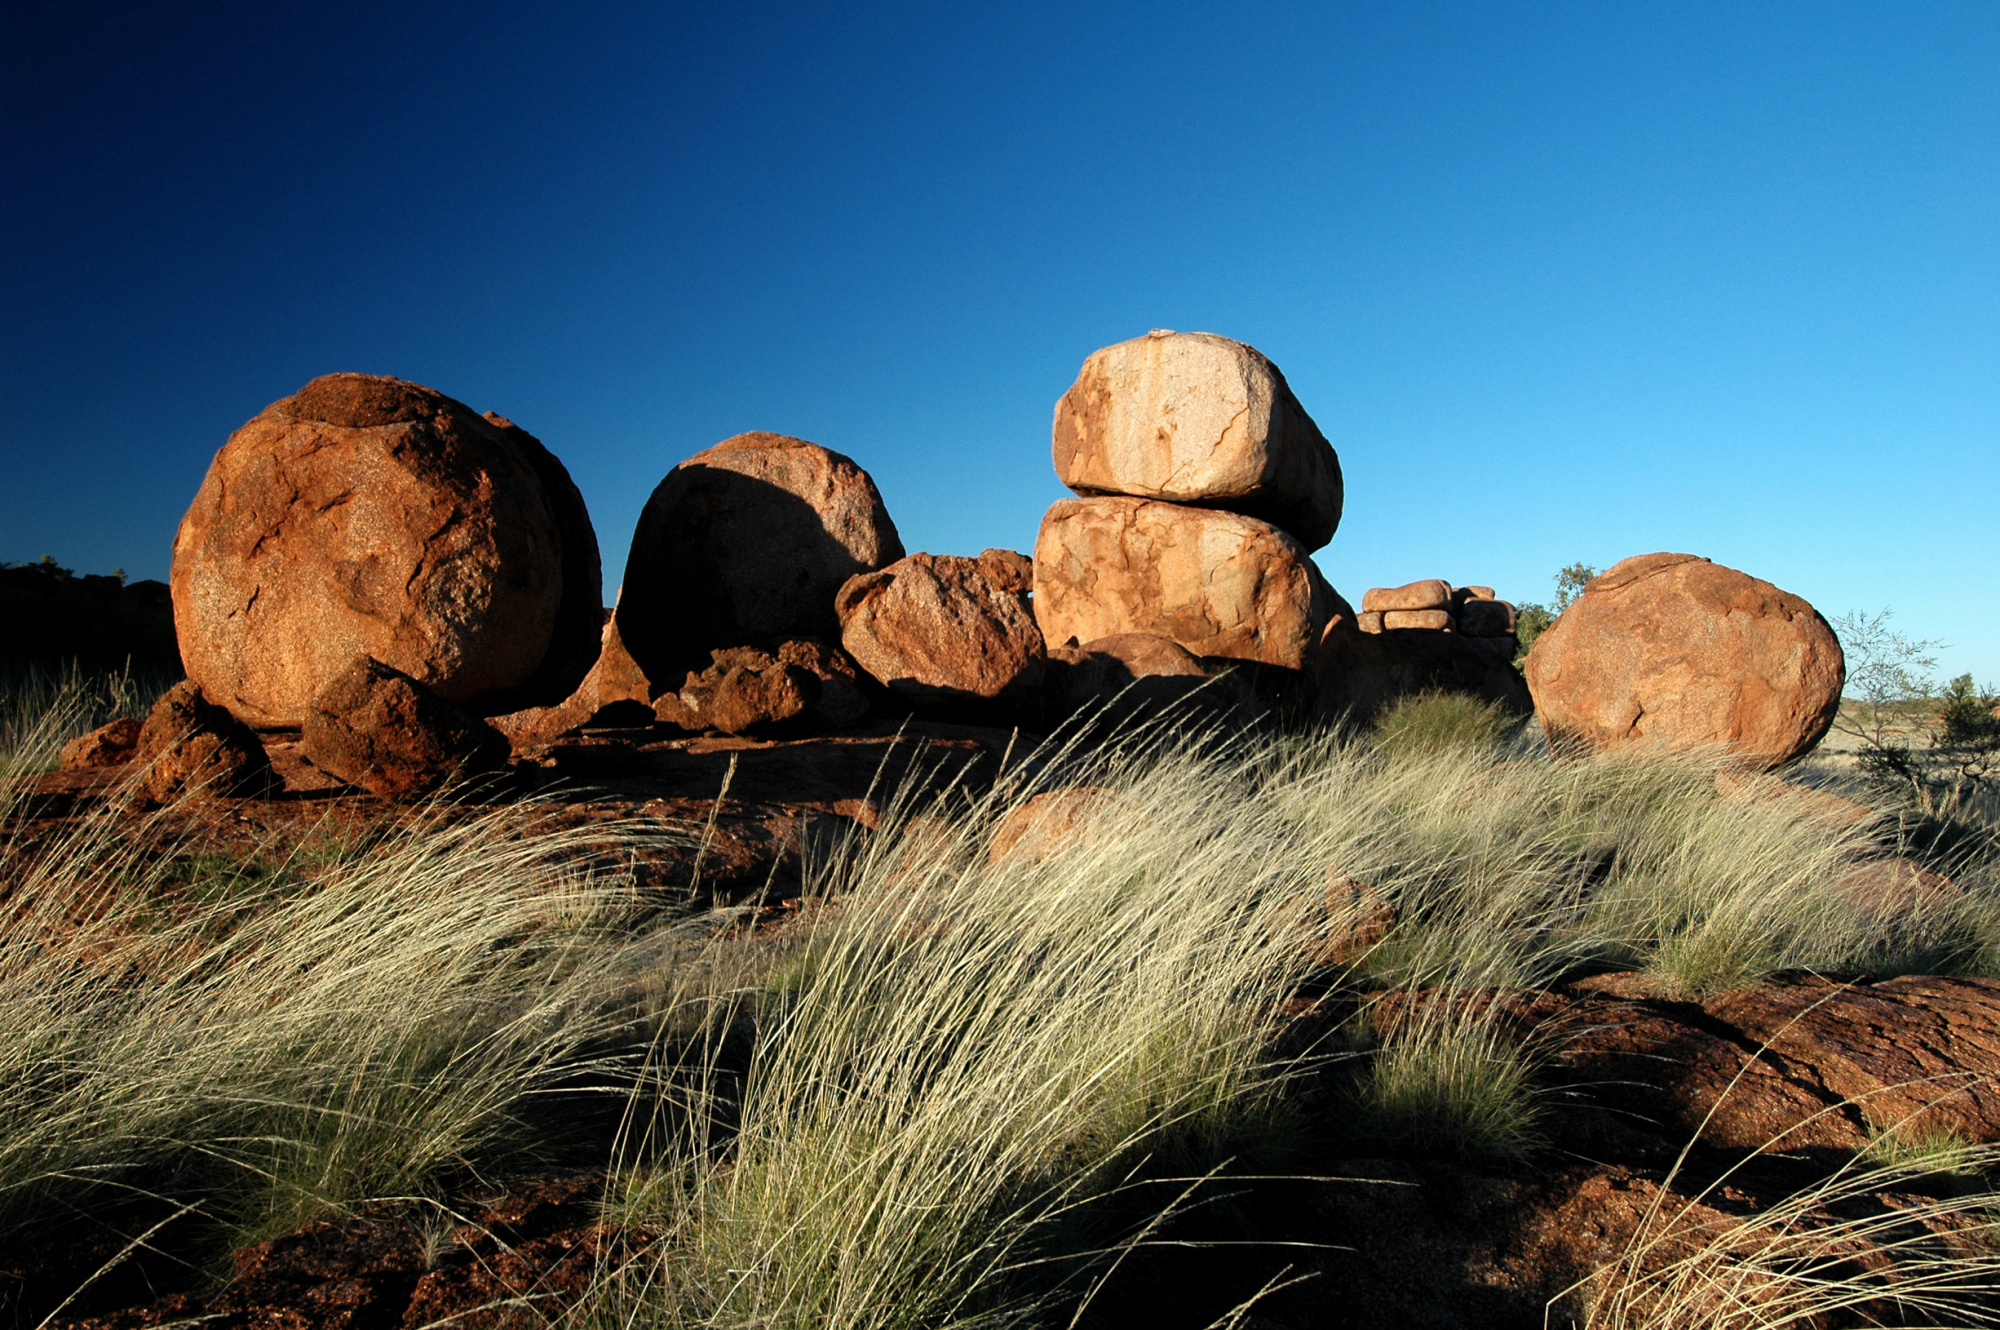 Outback Safari | Karlu Karlu - The Devils Marbles, Central Australia, Northern Territory